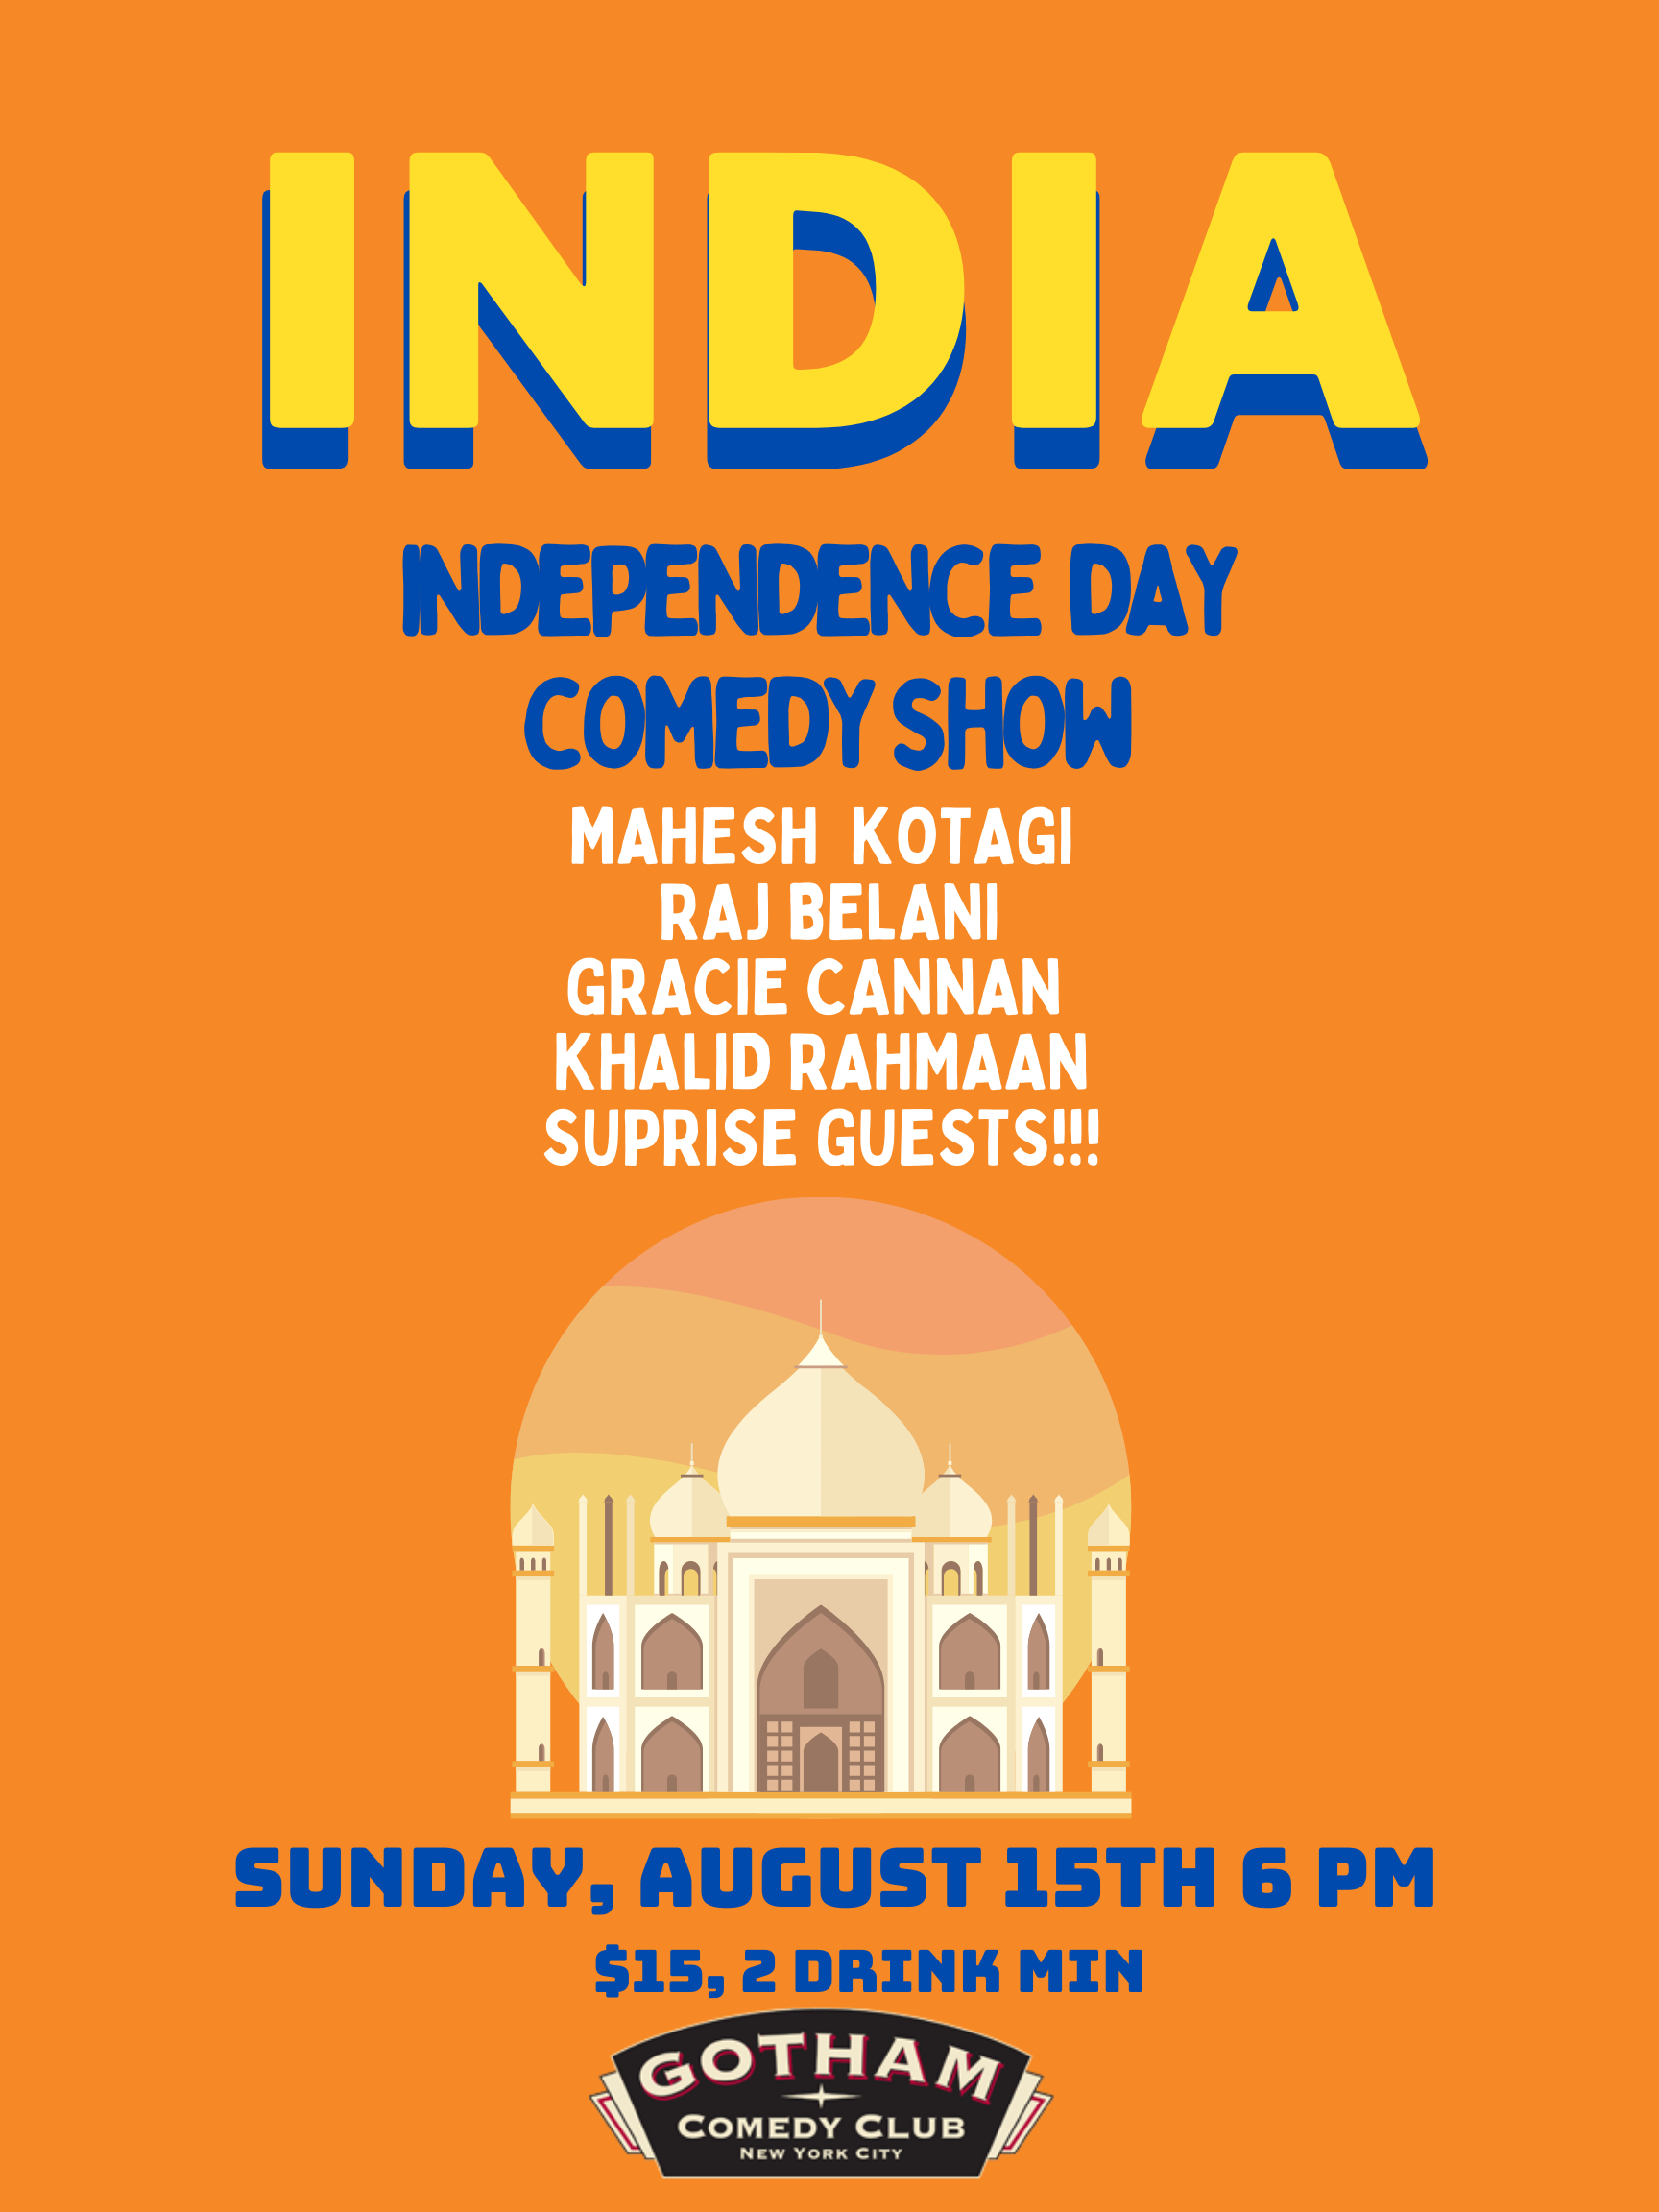 India Independence Day Comedy Show